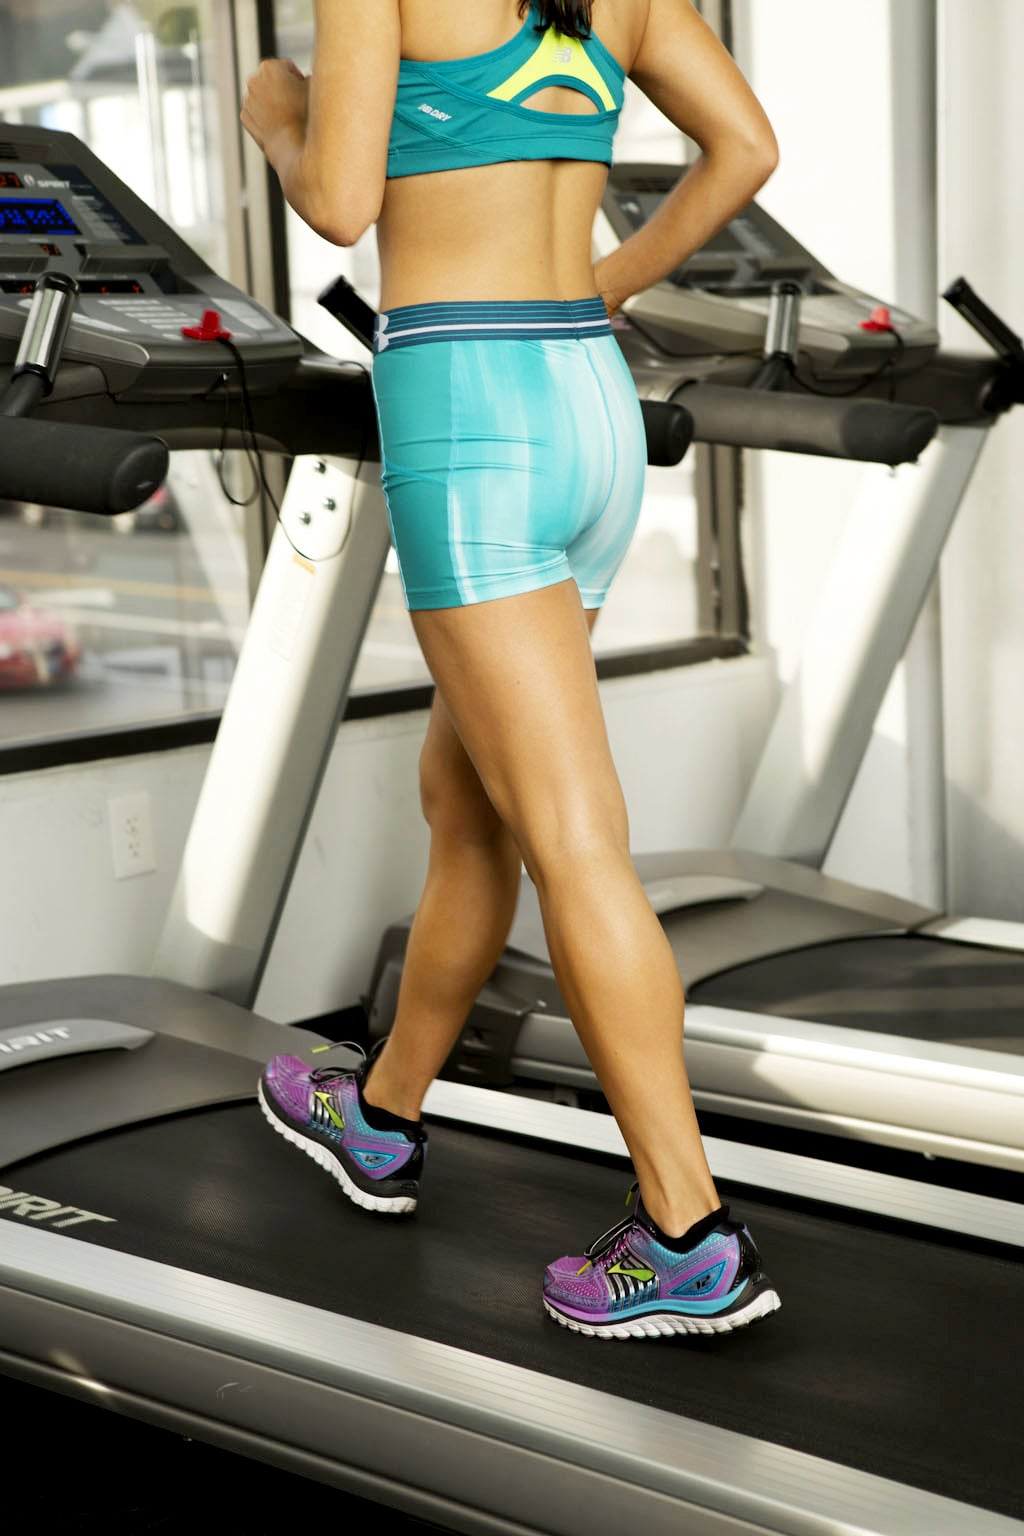 A Fat-Burning 20-Minute Treadmill Workout You Can Do on Your Lunch Break